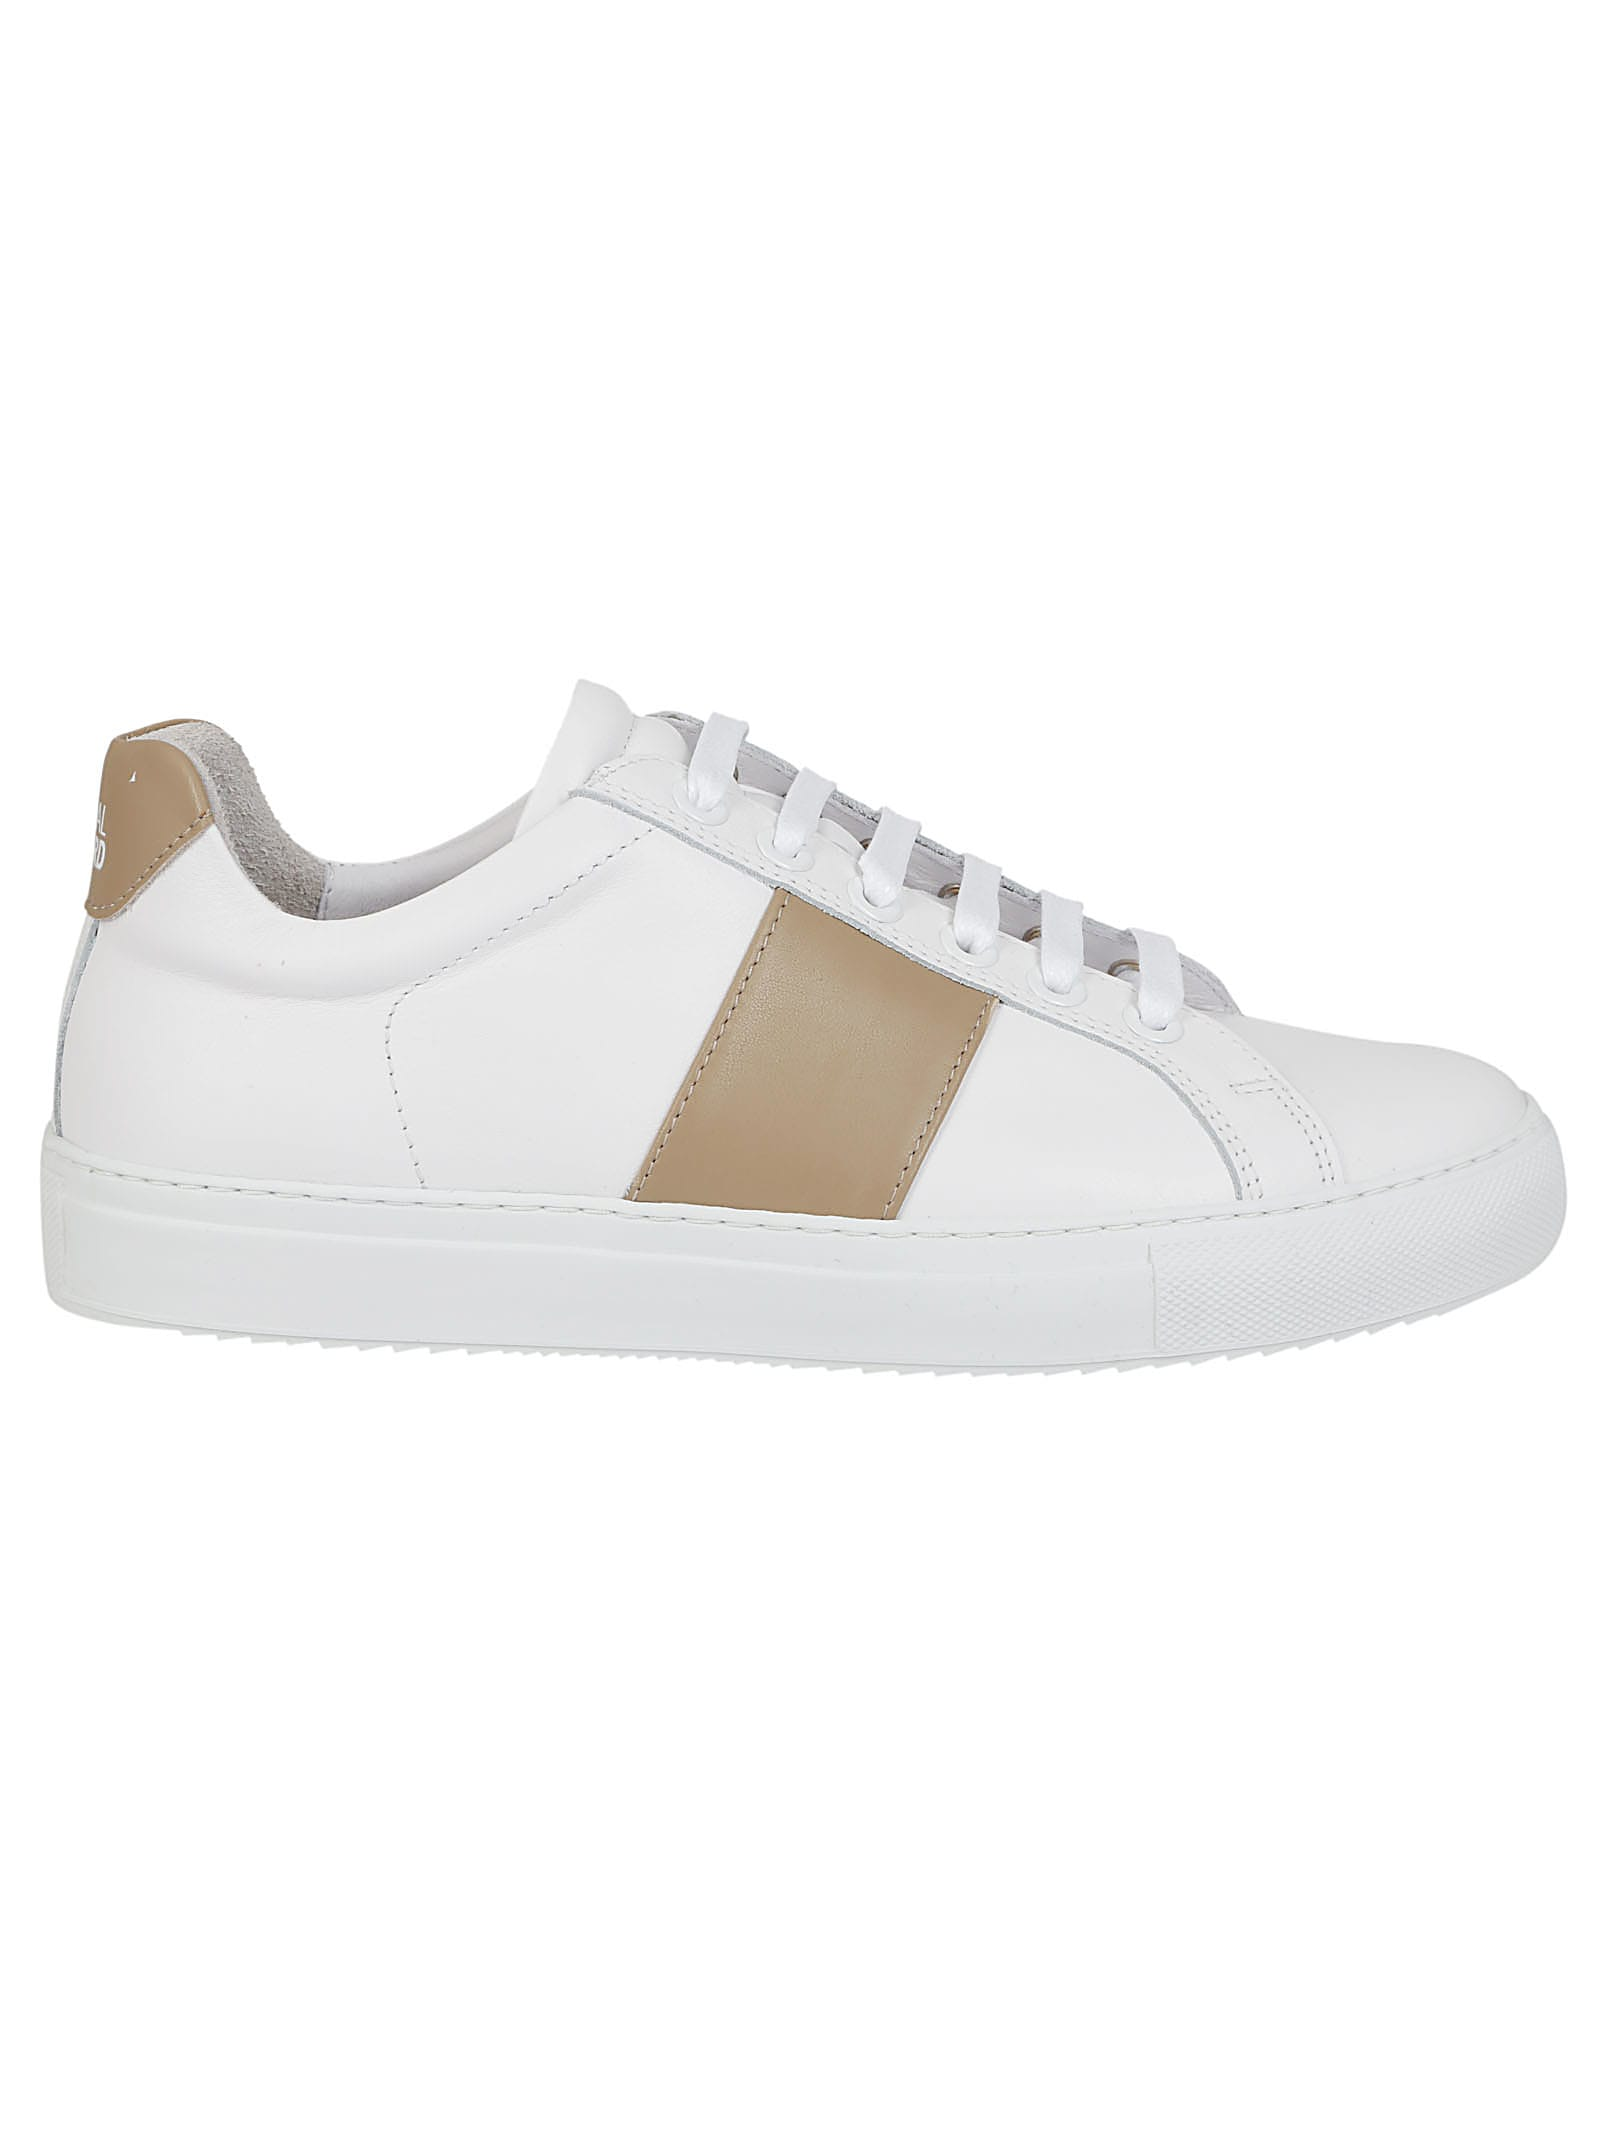 National Standard National Standard Edition 4 Low Sneakers